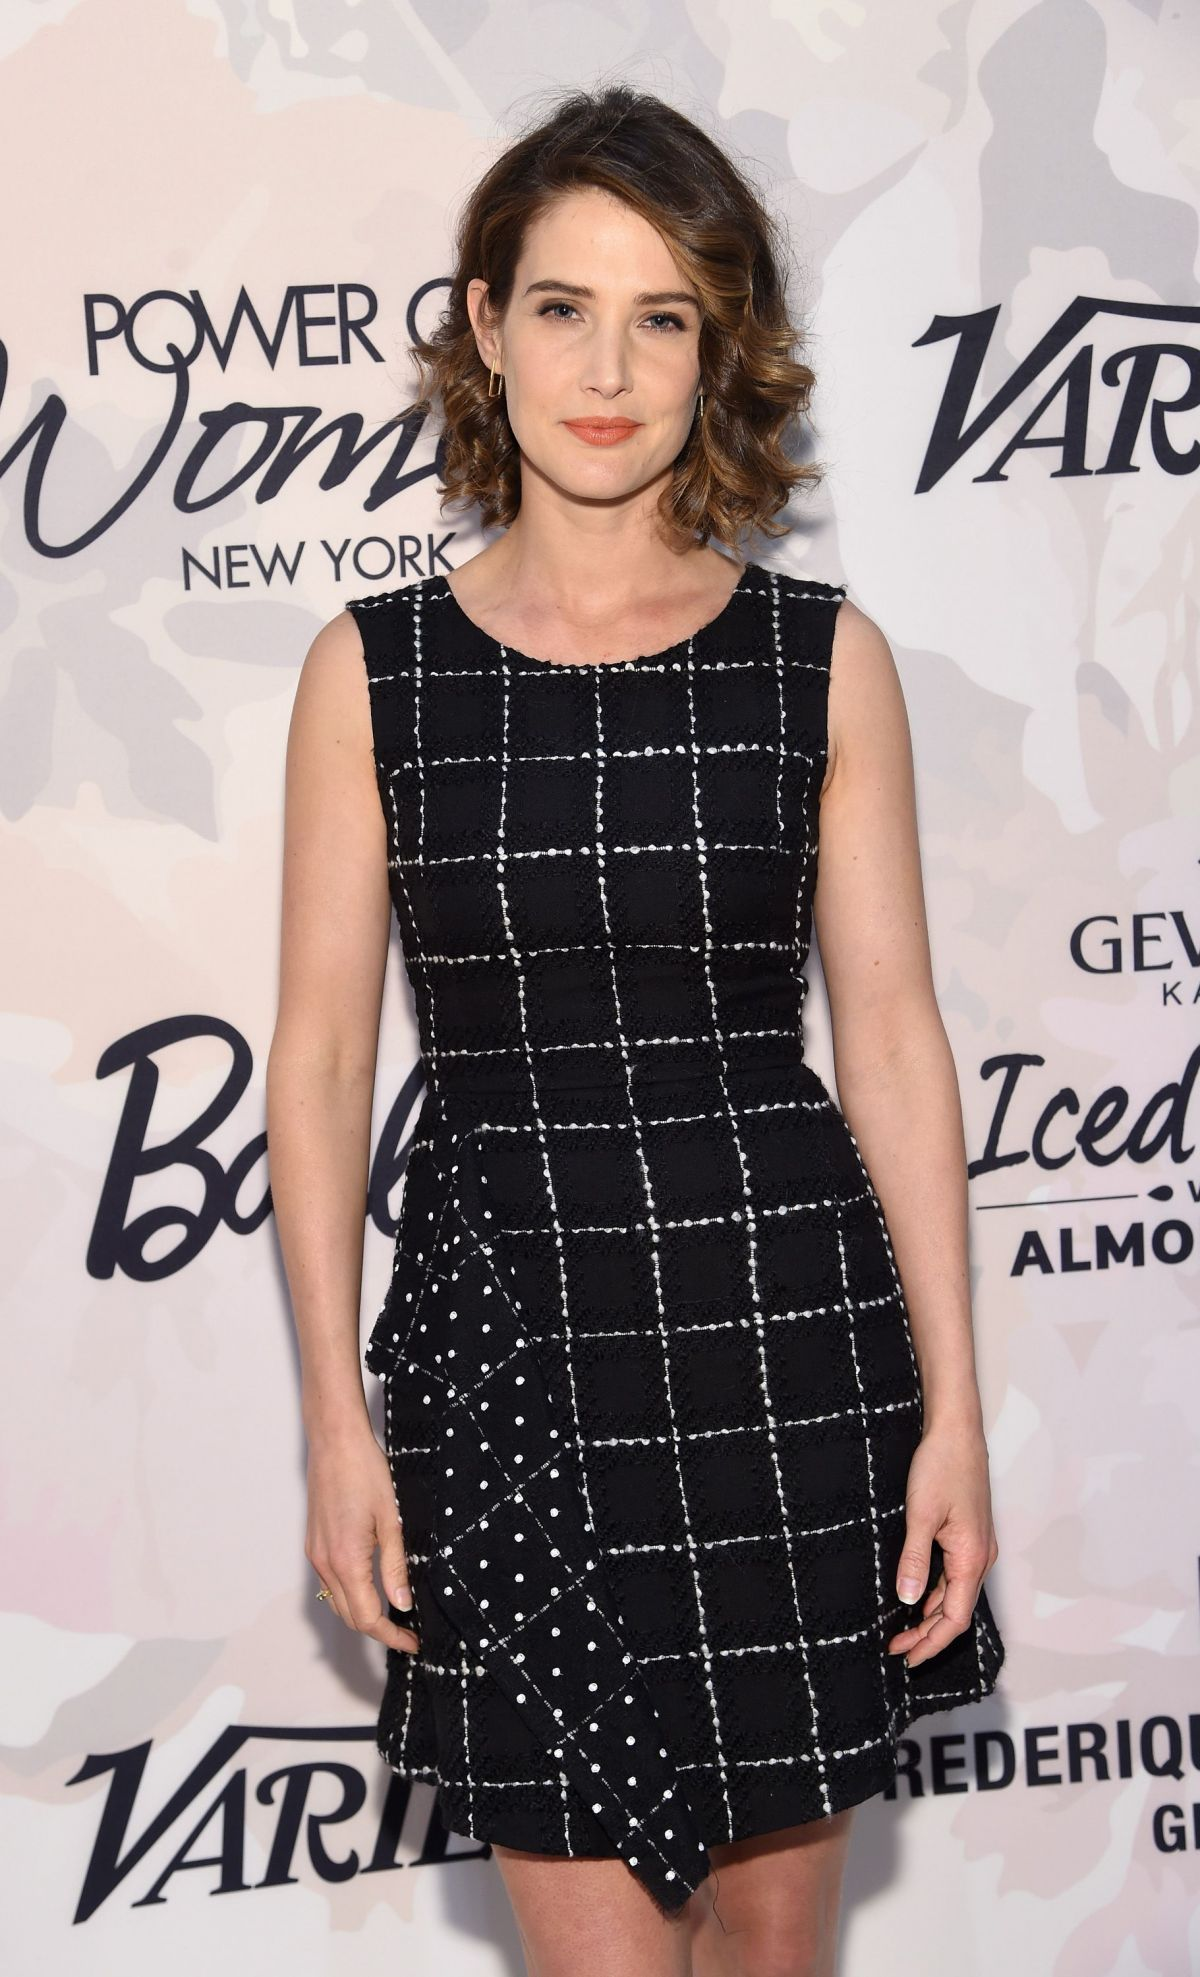 COBIE SMULDERS at Variety